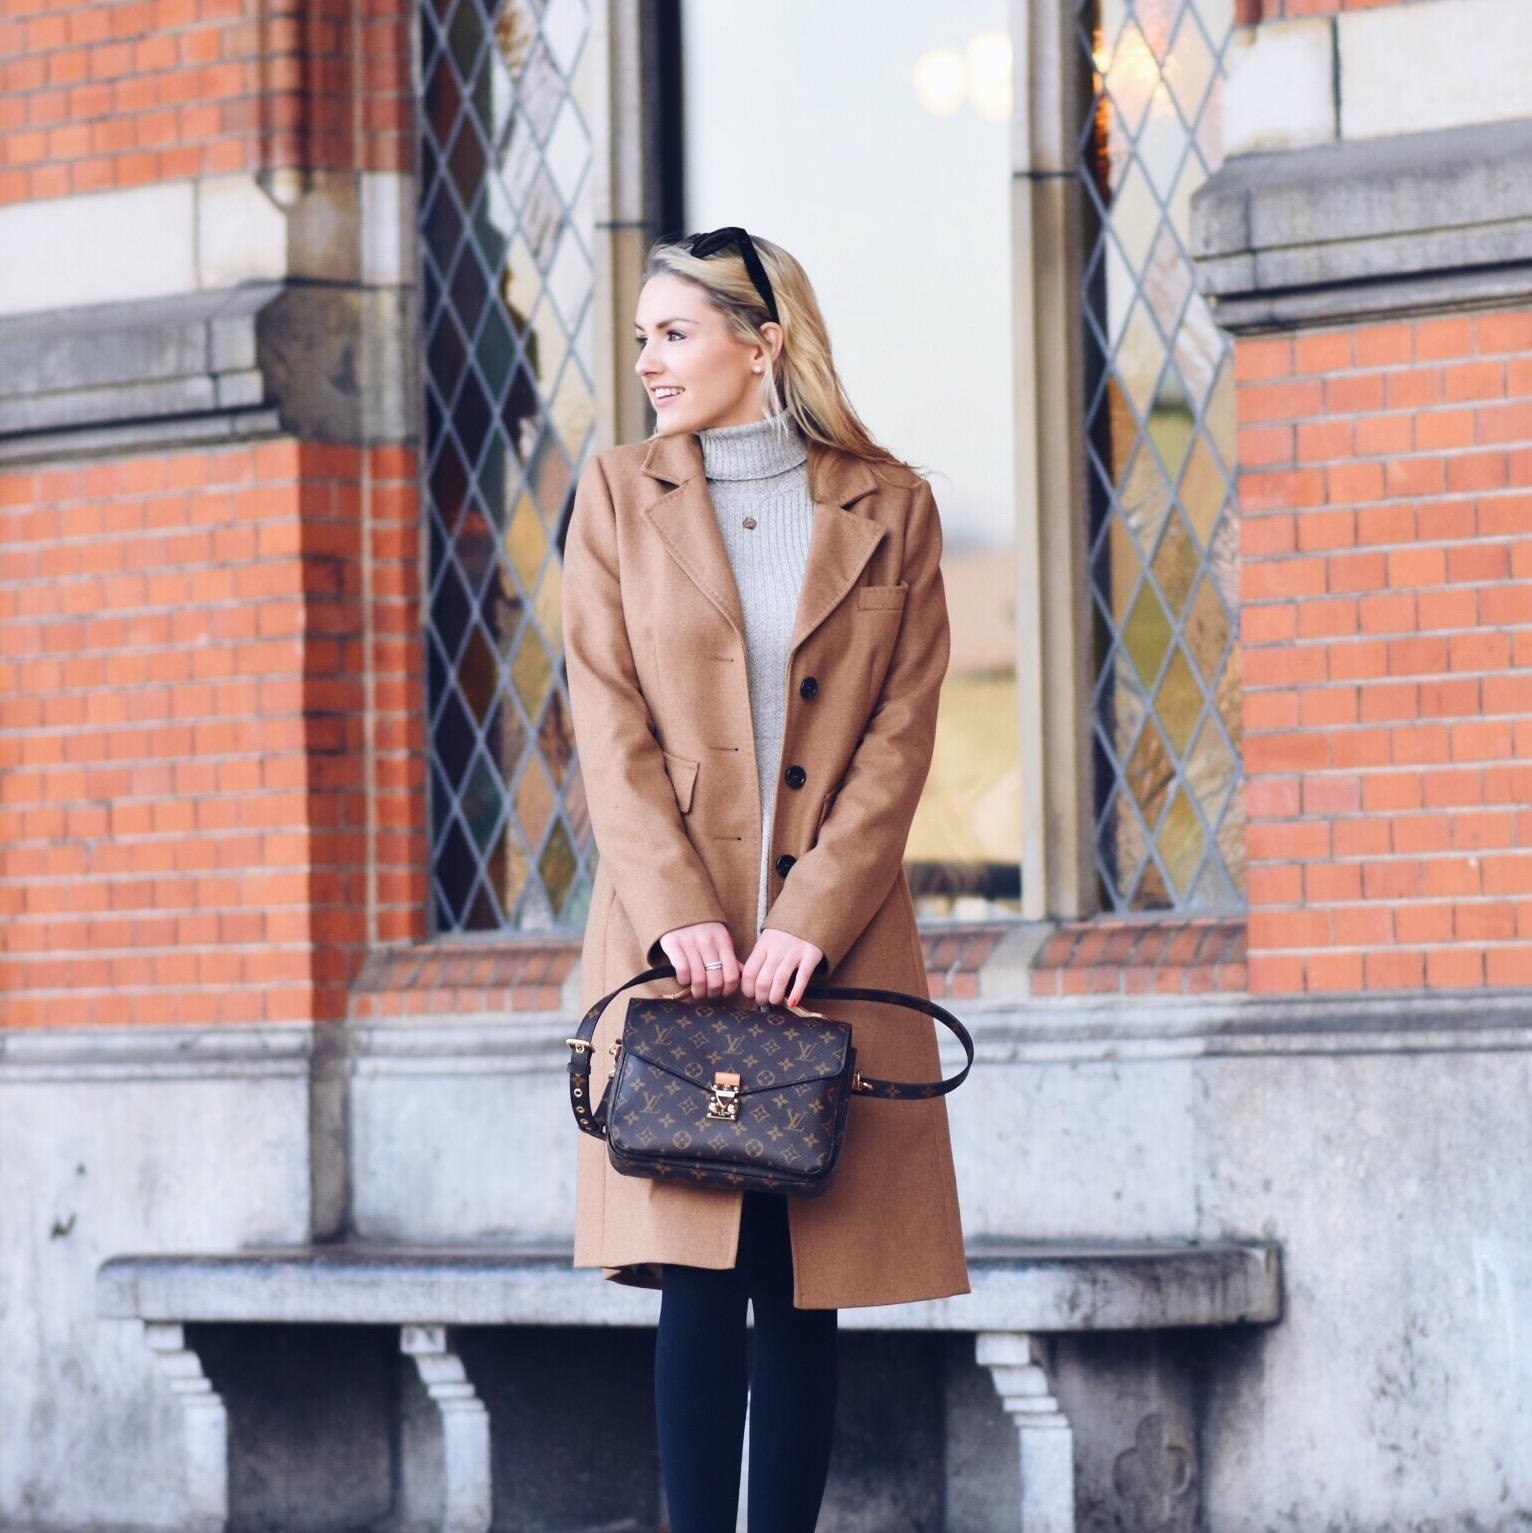 Turtle Neck Dress & Camel Coat